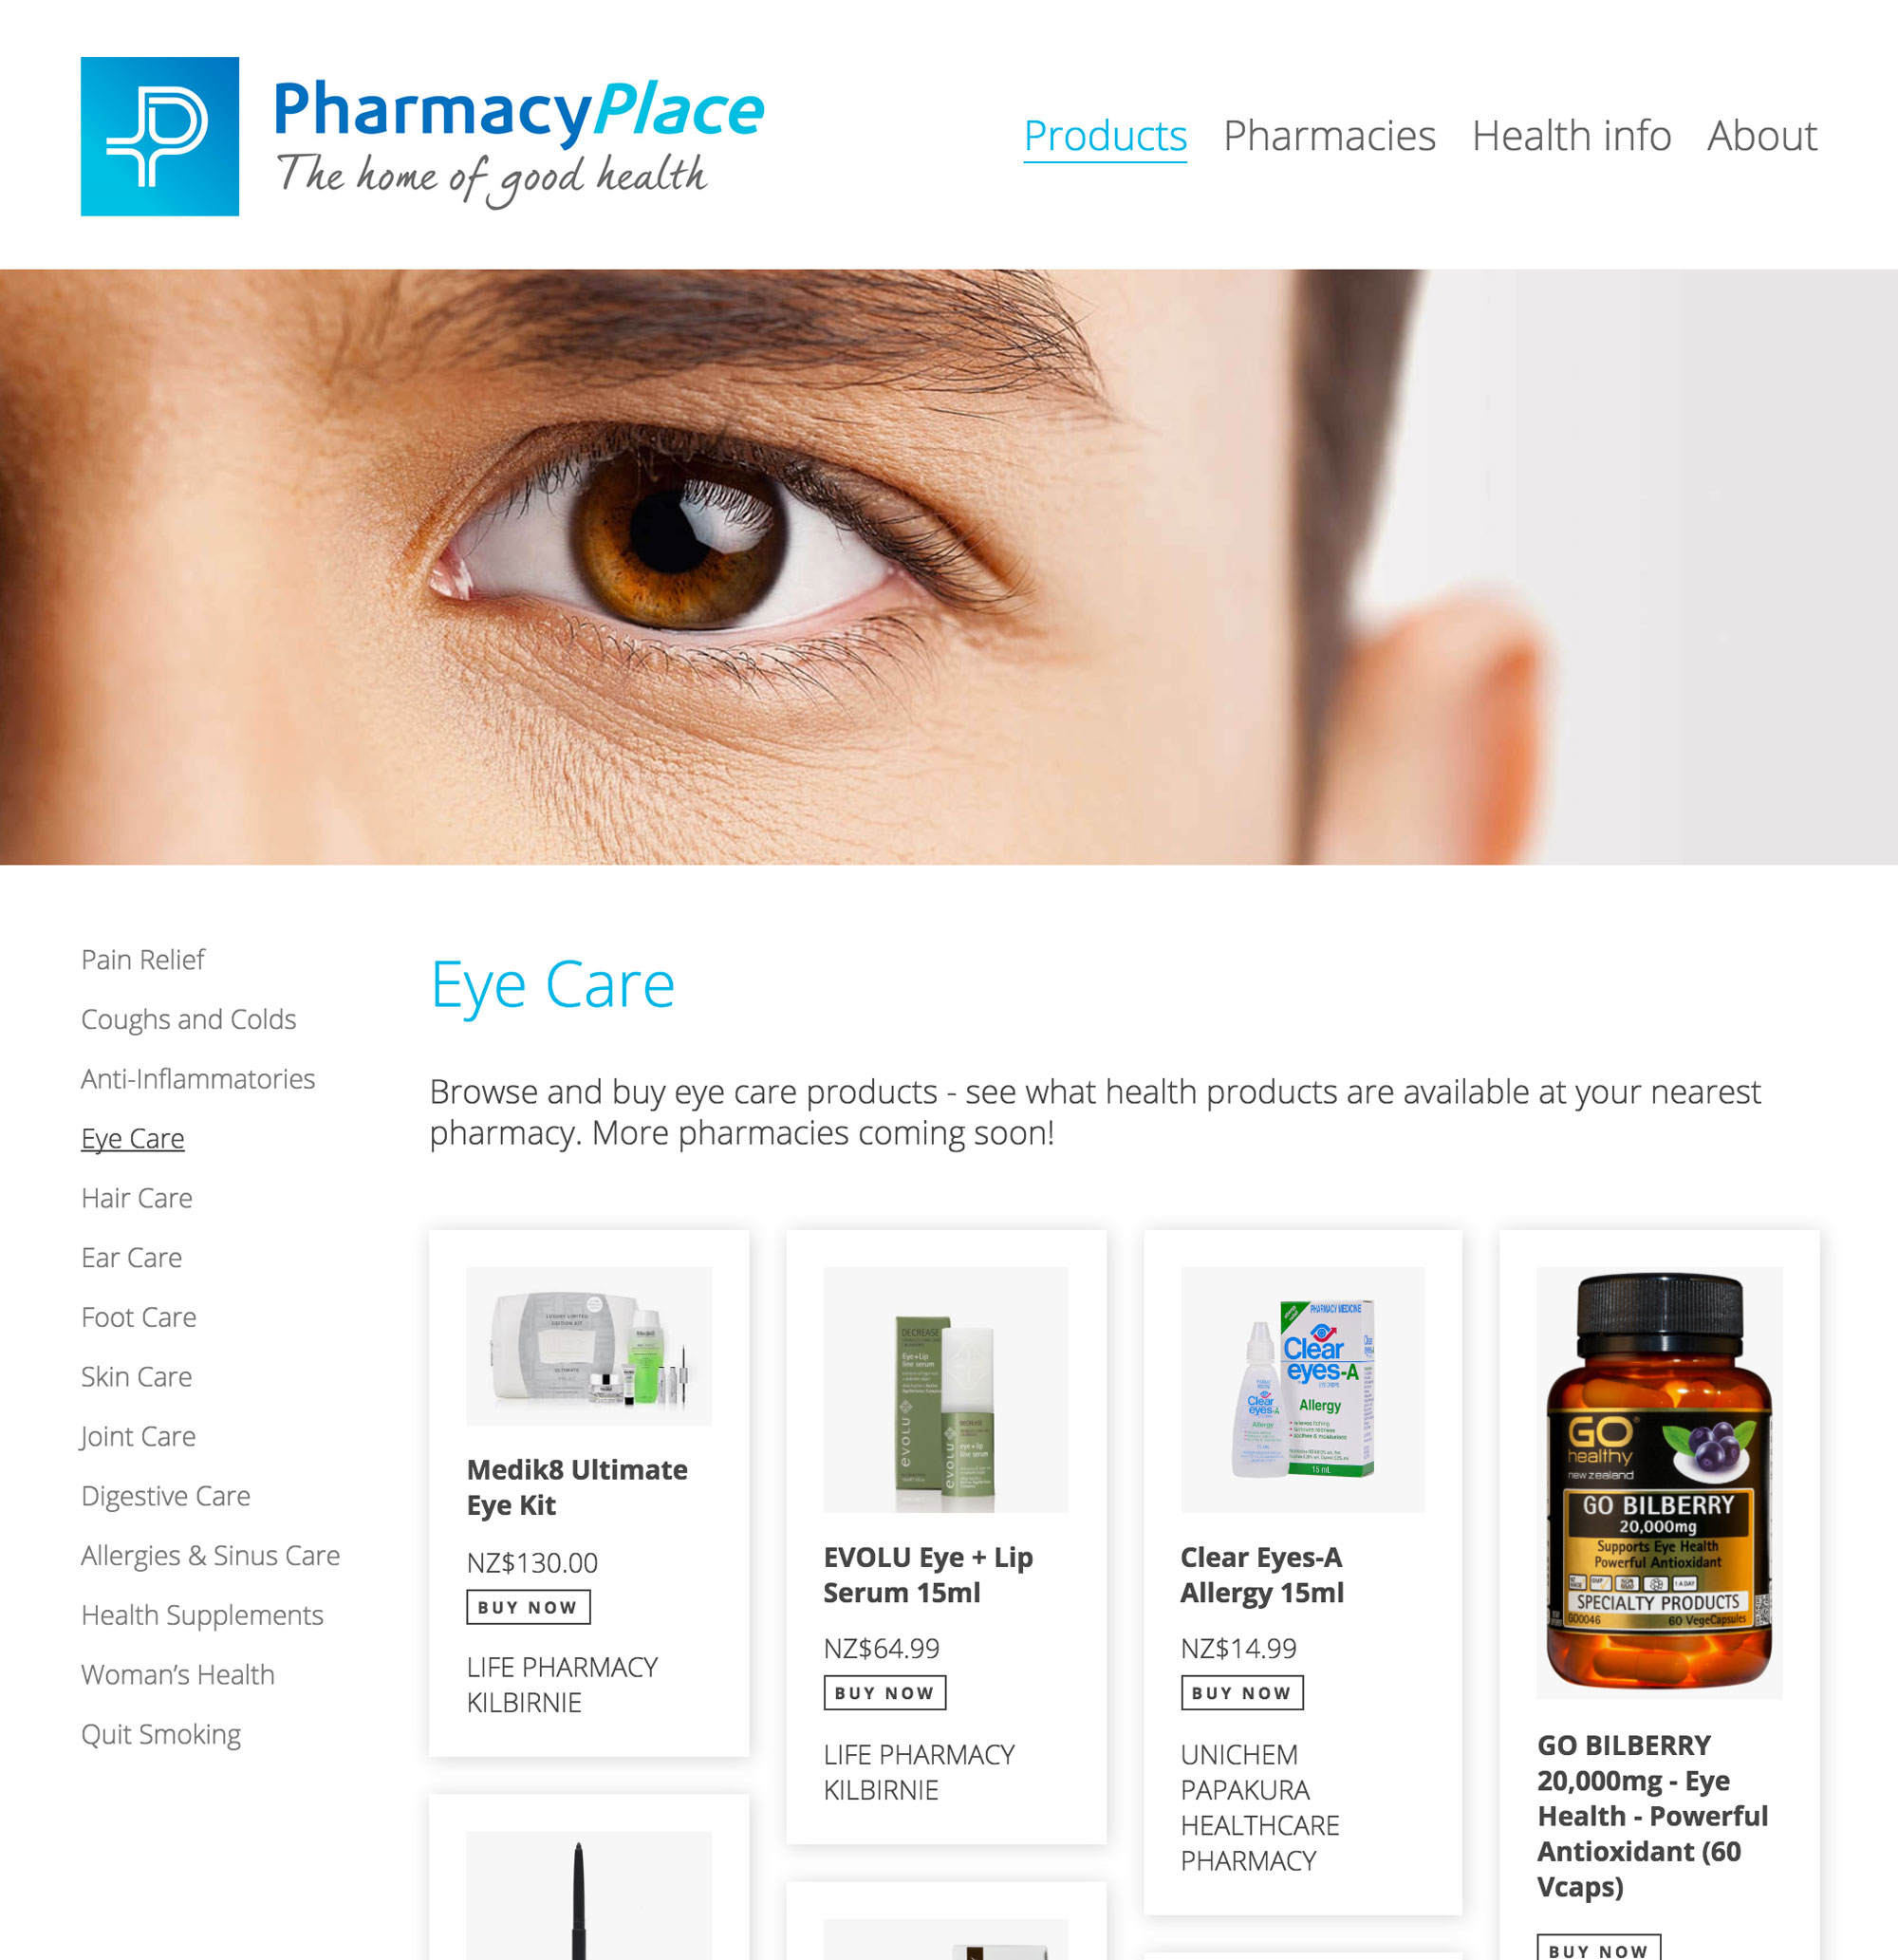 Pharmacy Place online directory and shopping website